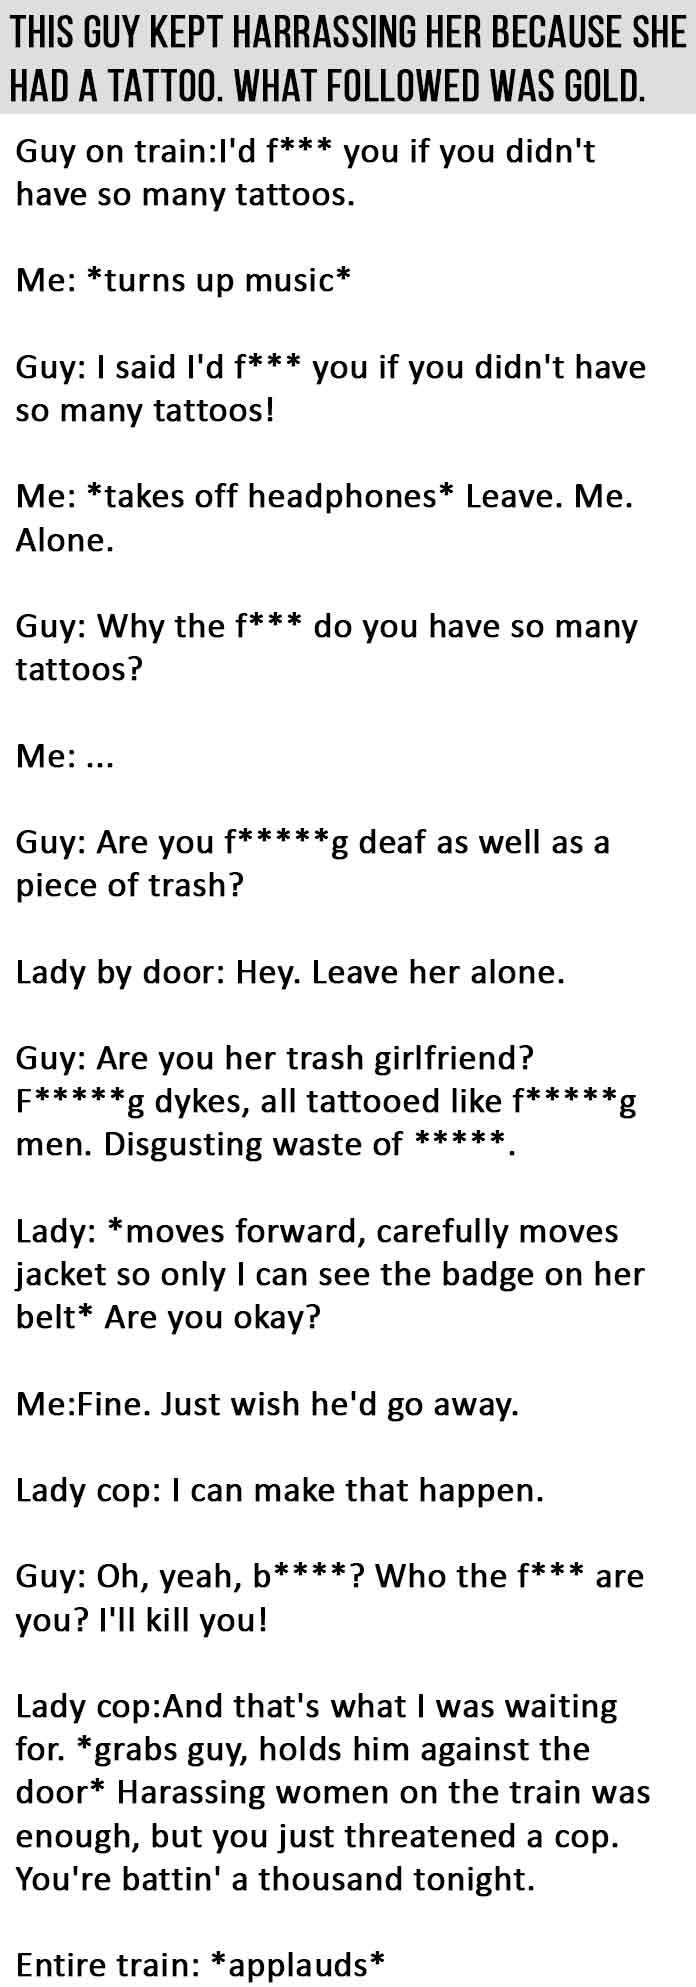 He Thought He'd Get Away With Harassing A Woman On A Train. This Is GOLD.